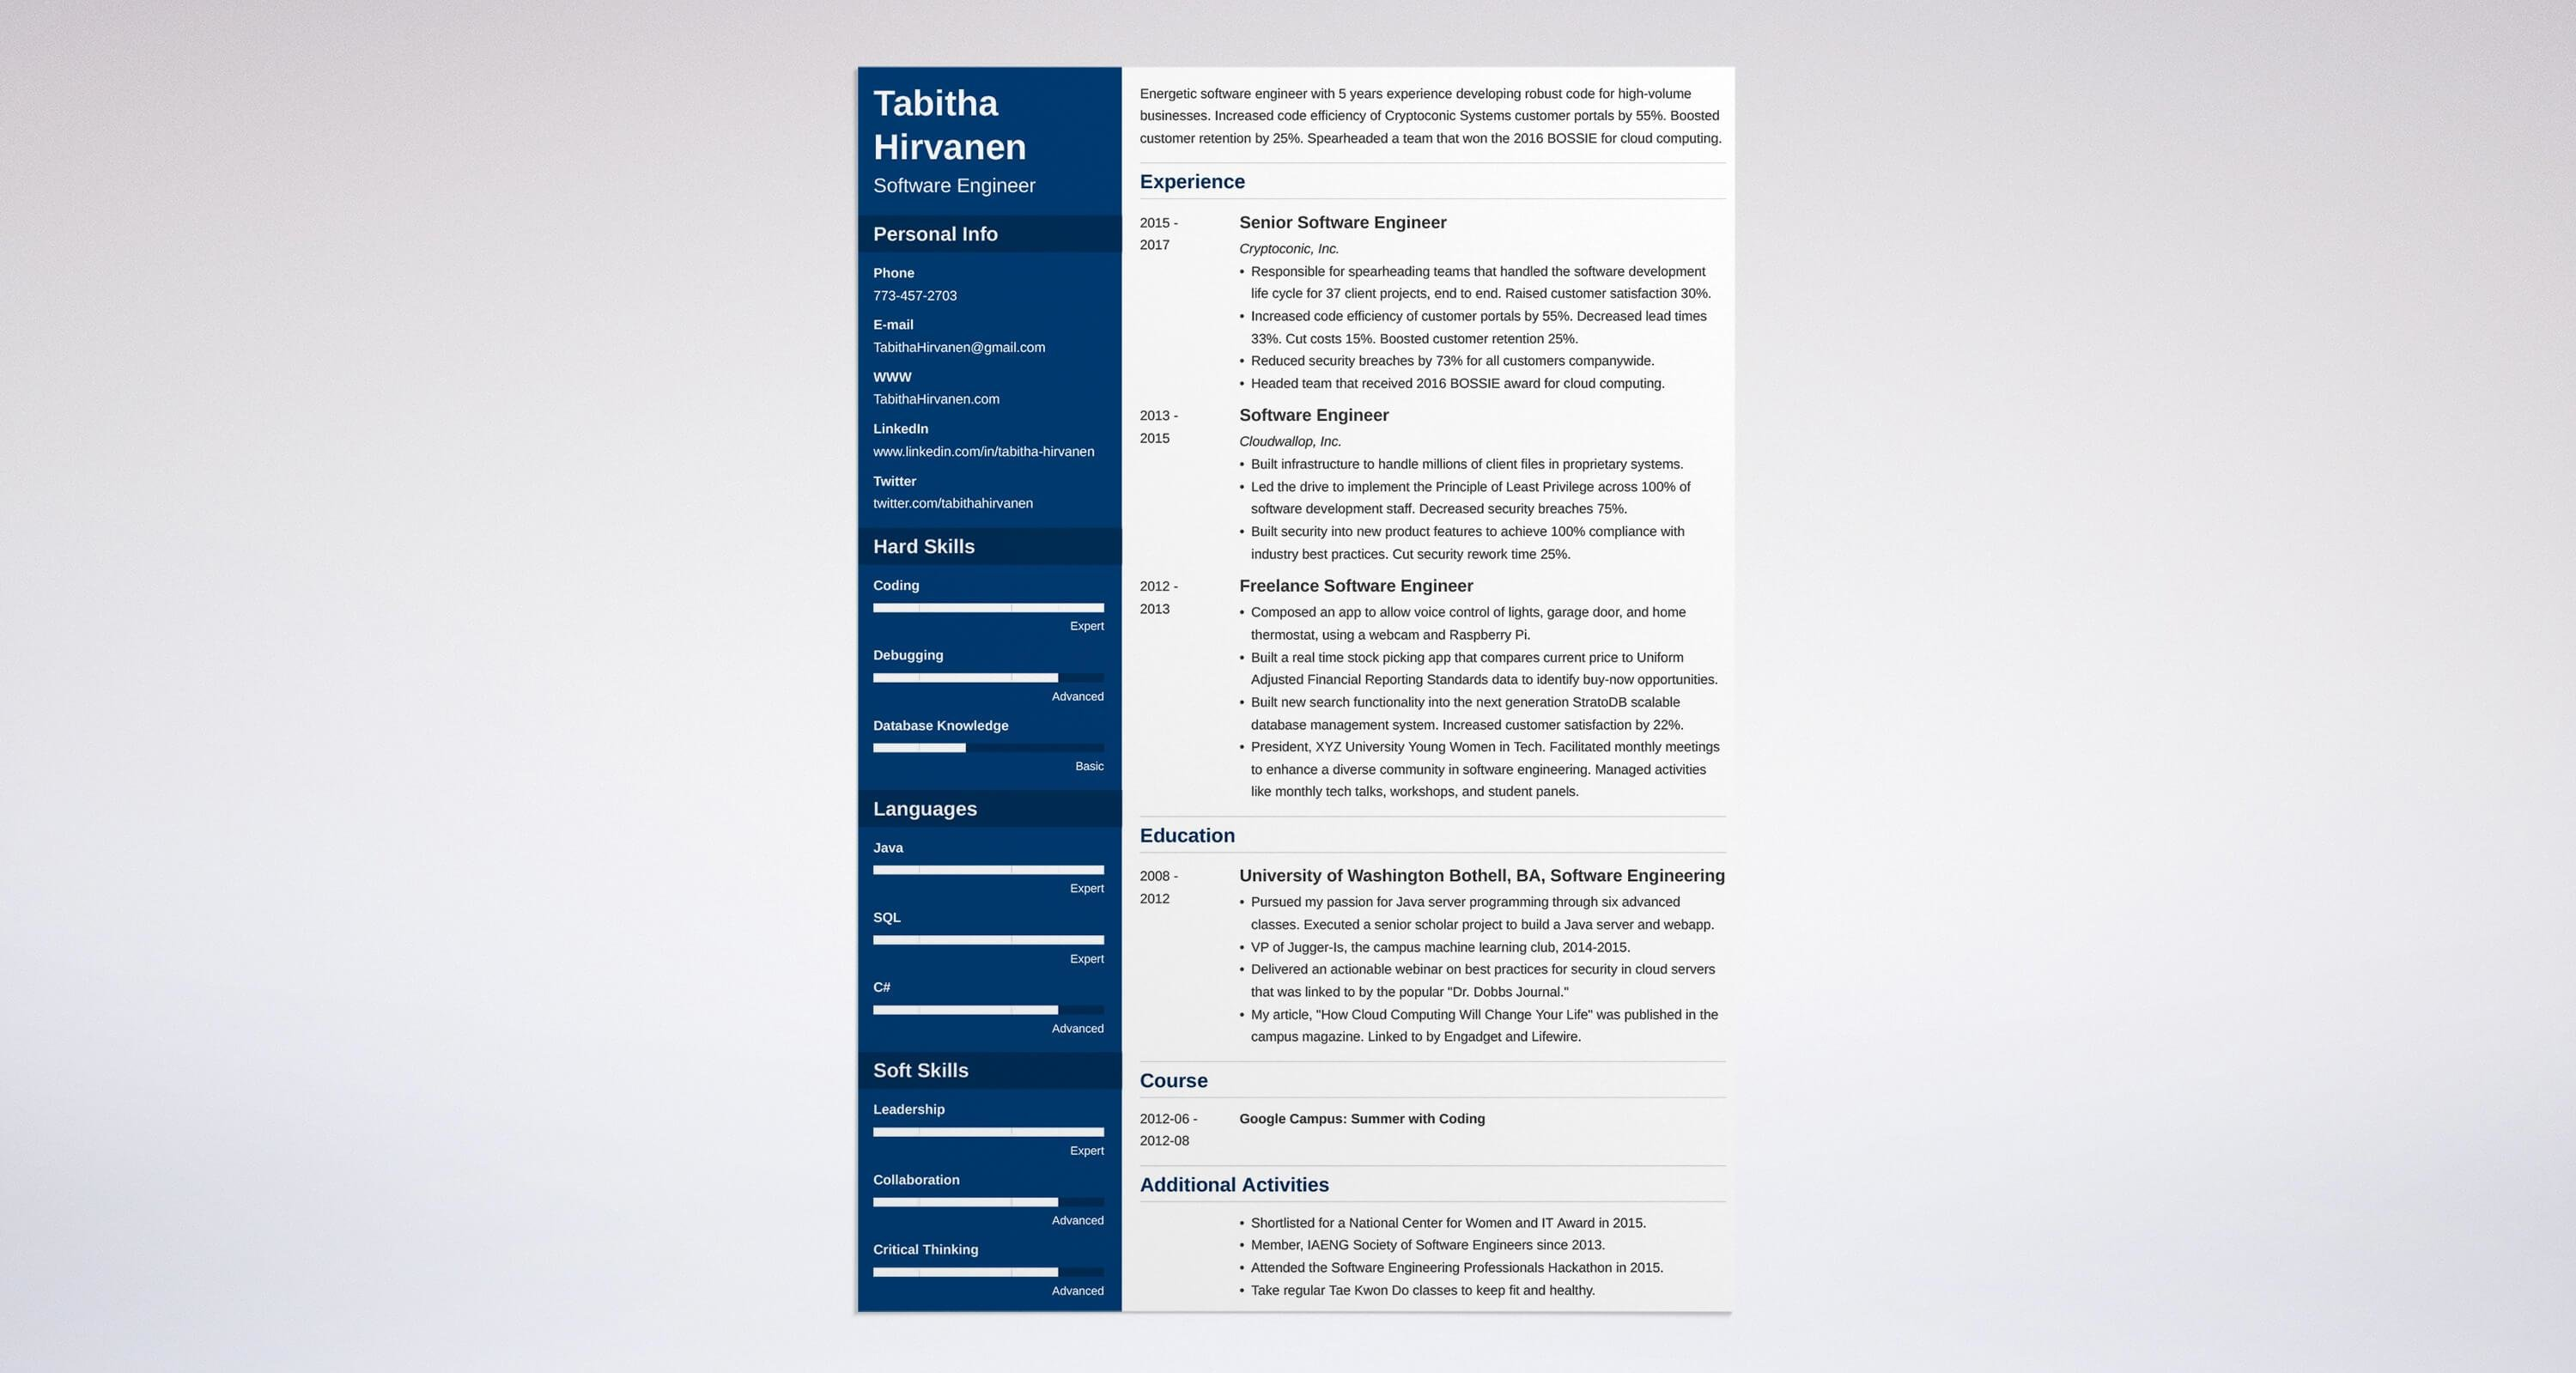 Perfect Software Engineer Resume: Guide And A Sample [+20 Examples]